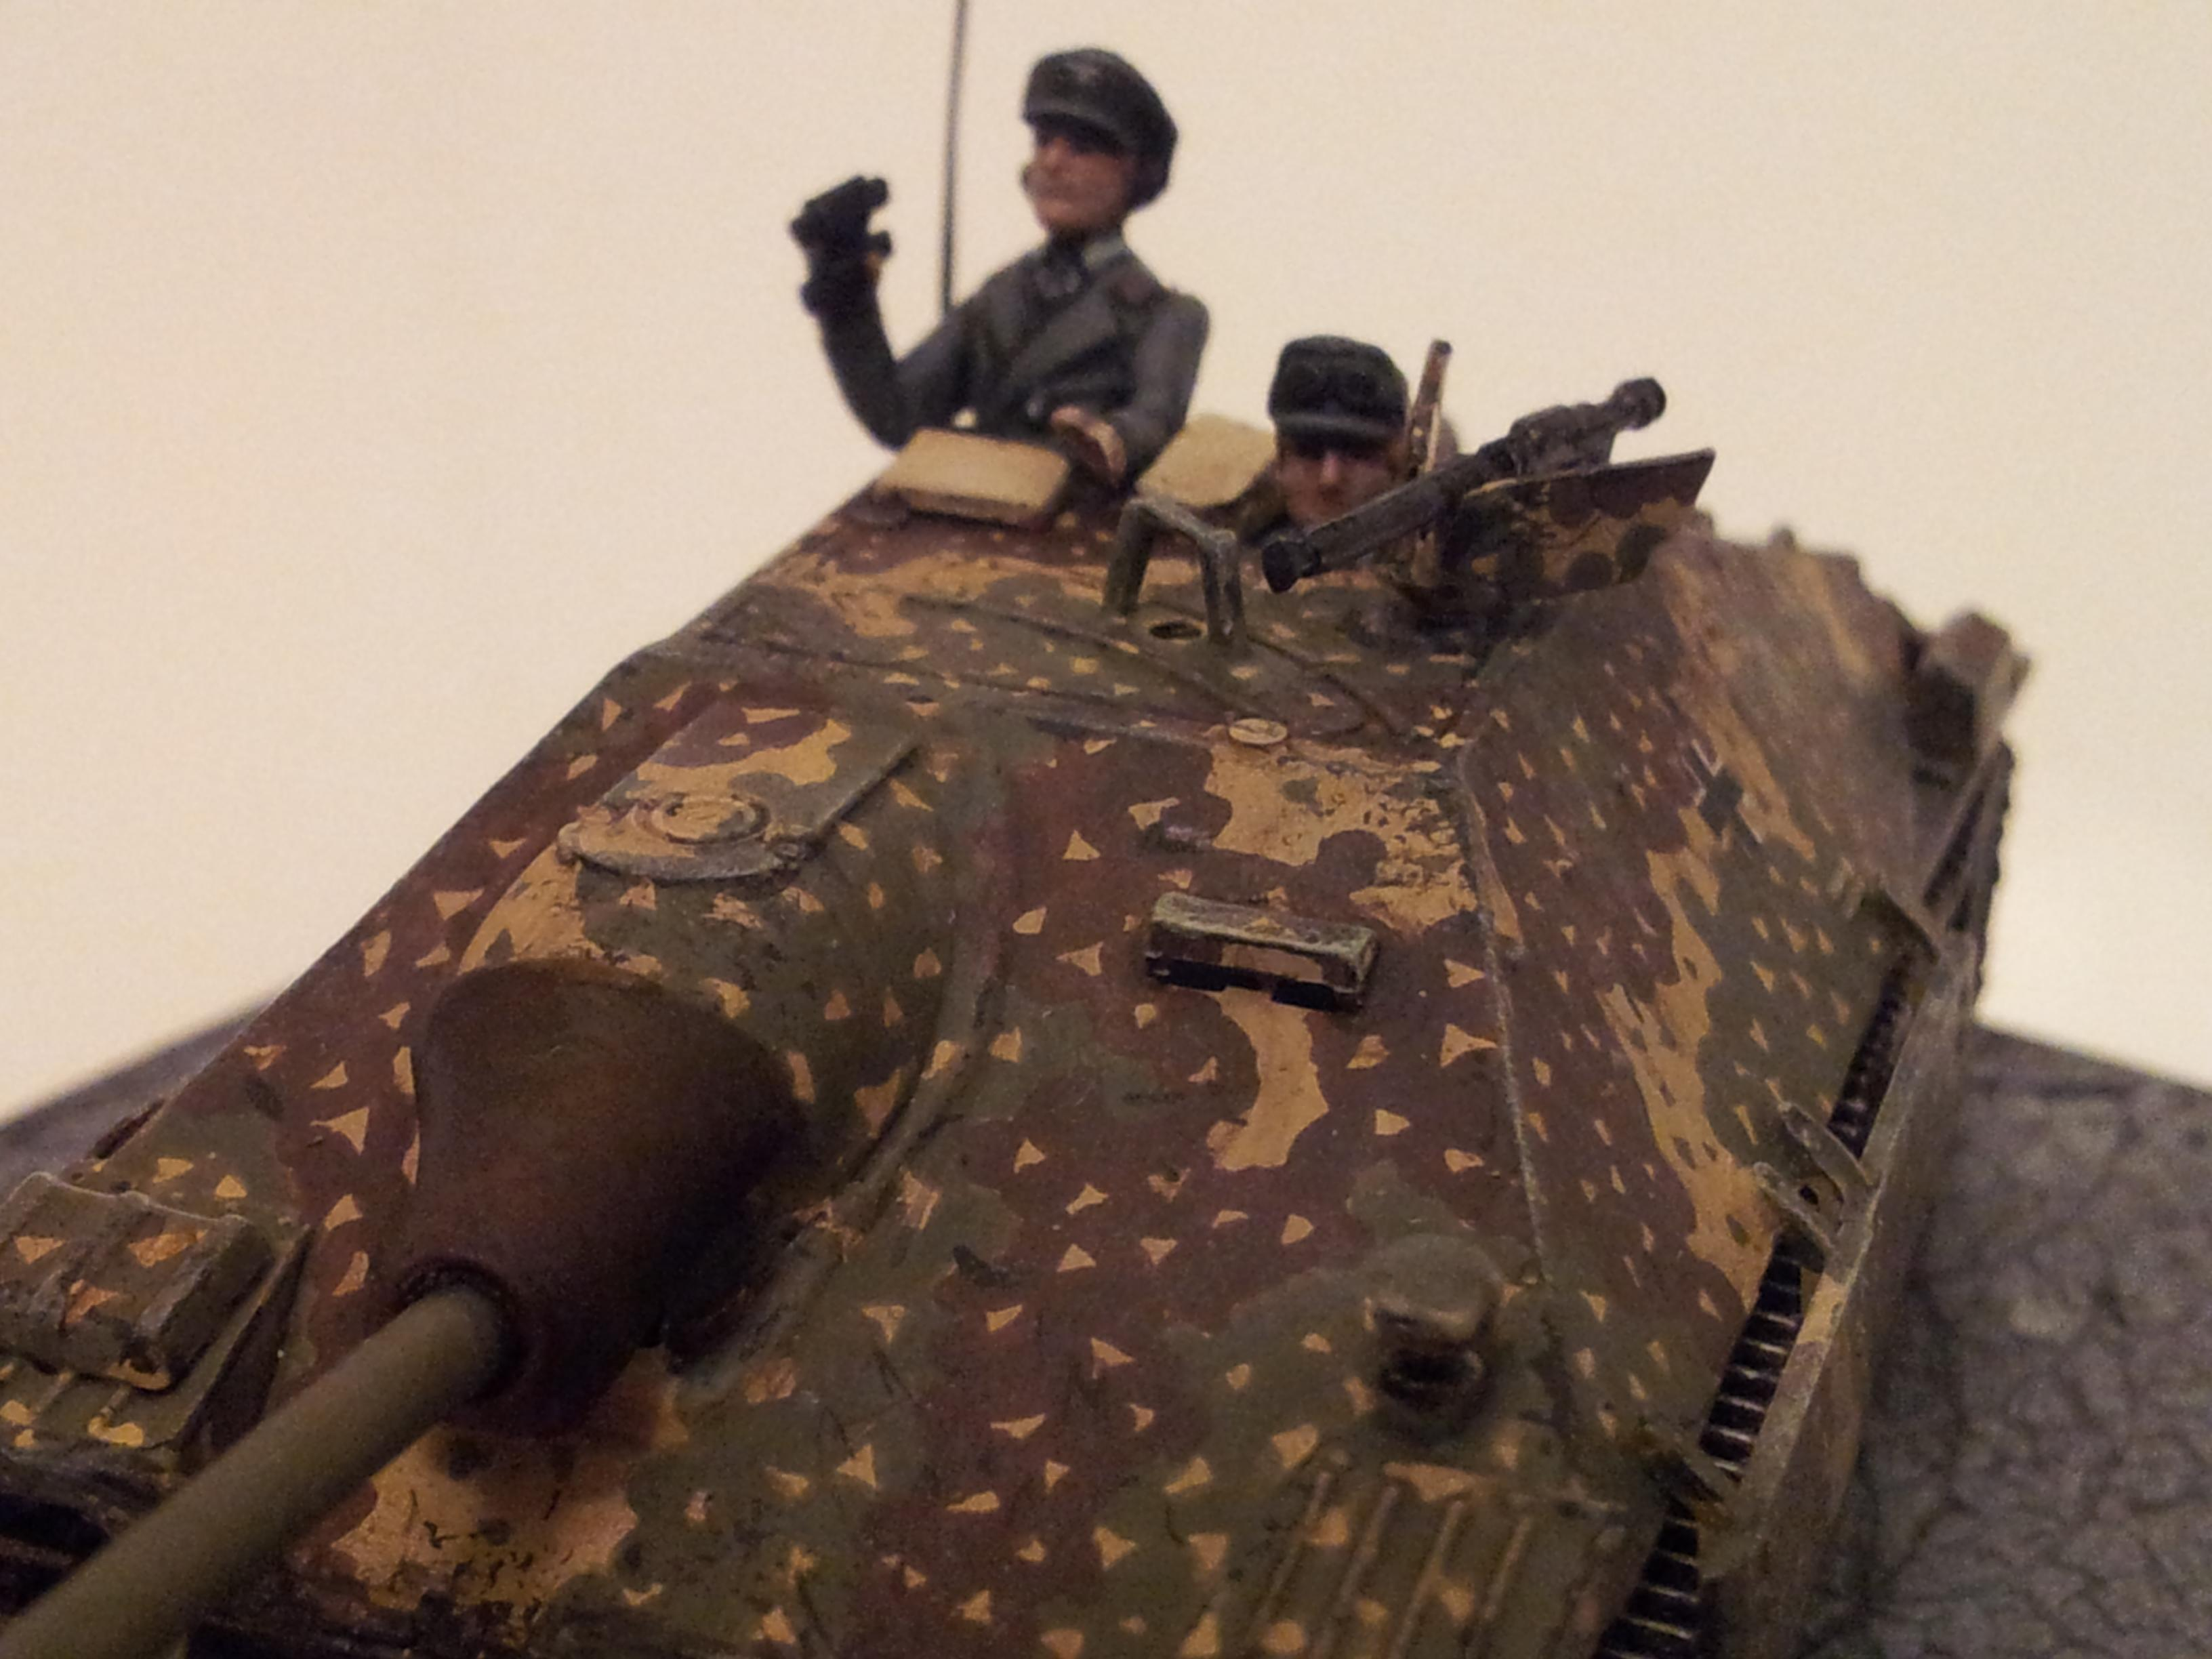 1/72, Camouflage, Germans, Hetzer, Panzer, World War 2